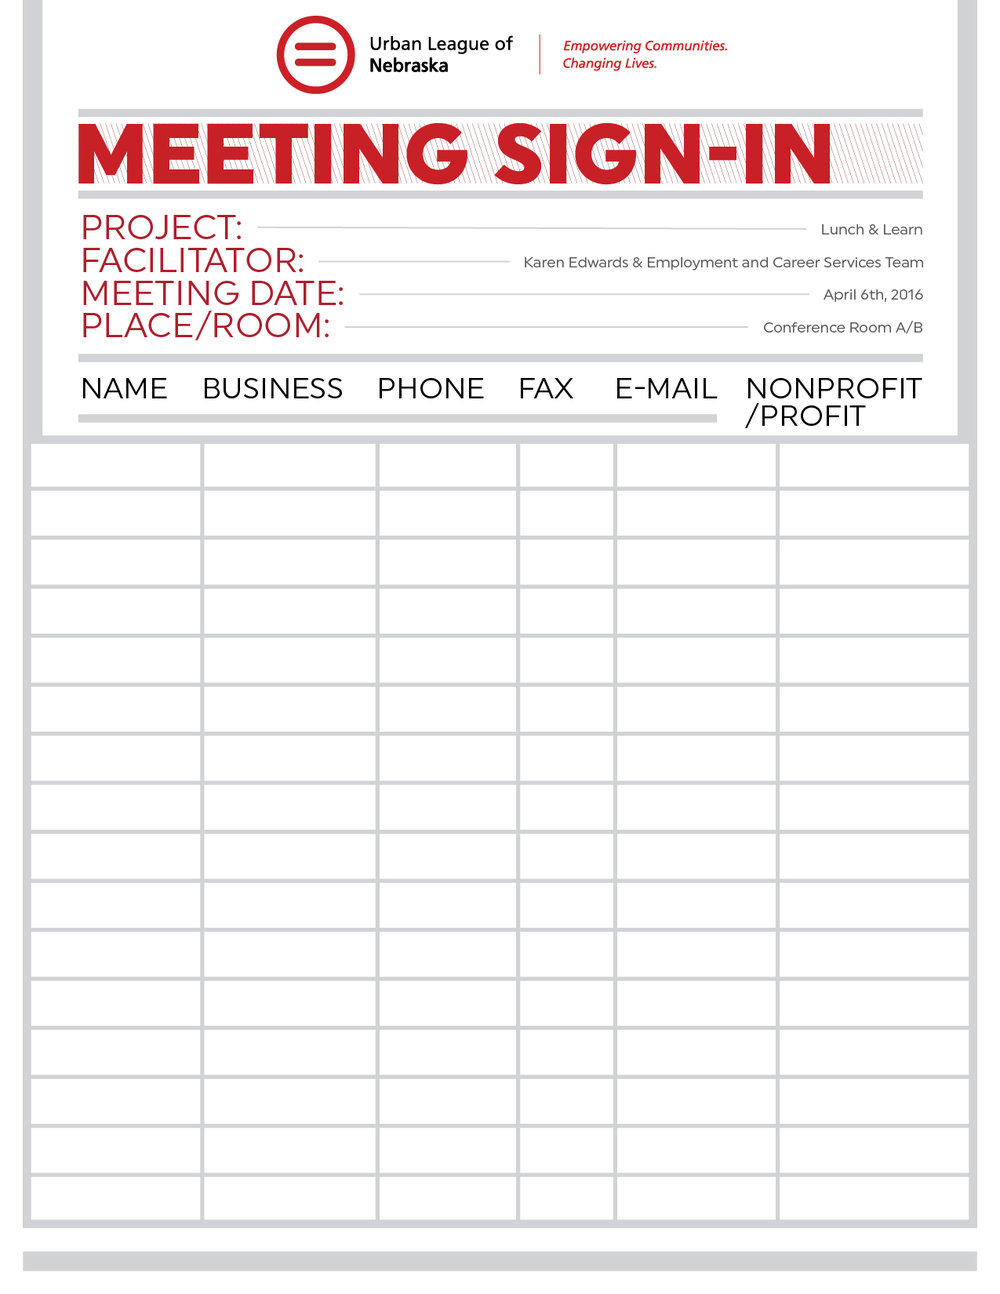 2016 ULN Meeting Sign-In Web-01.jpg